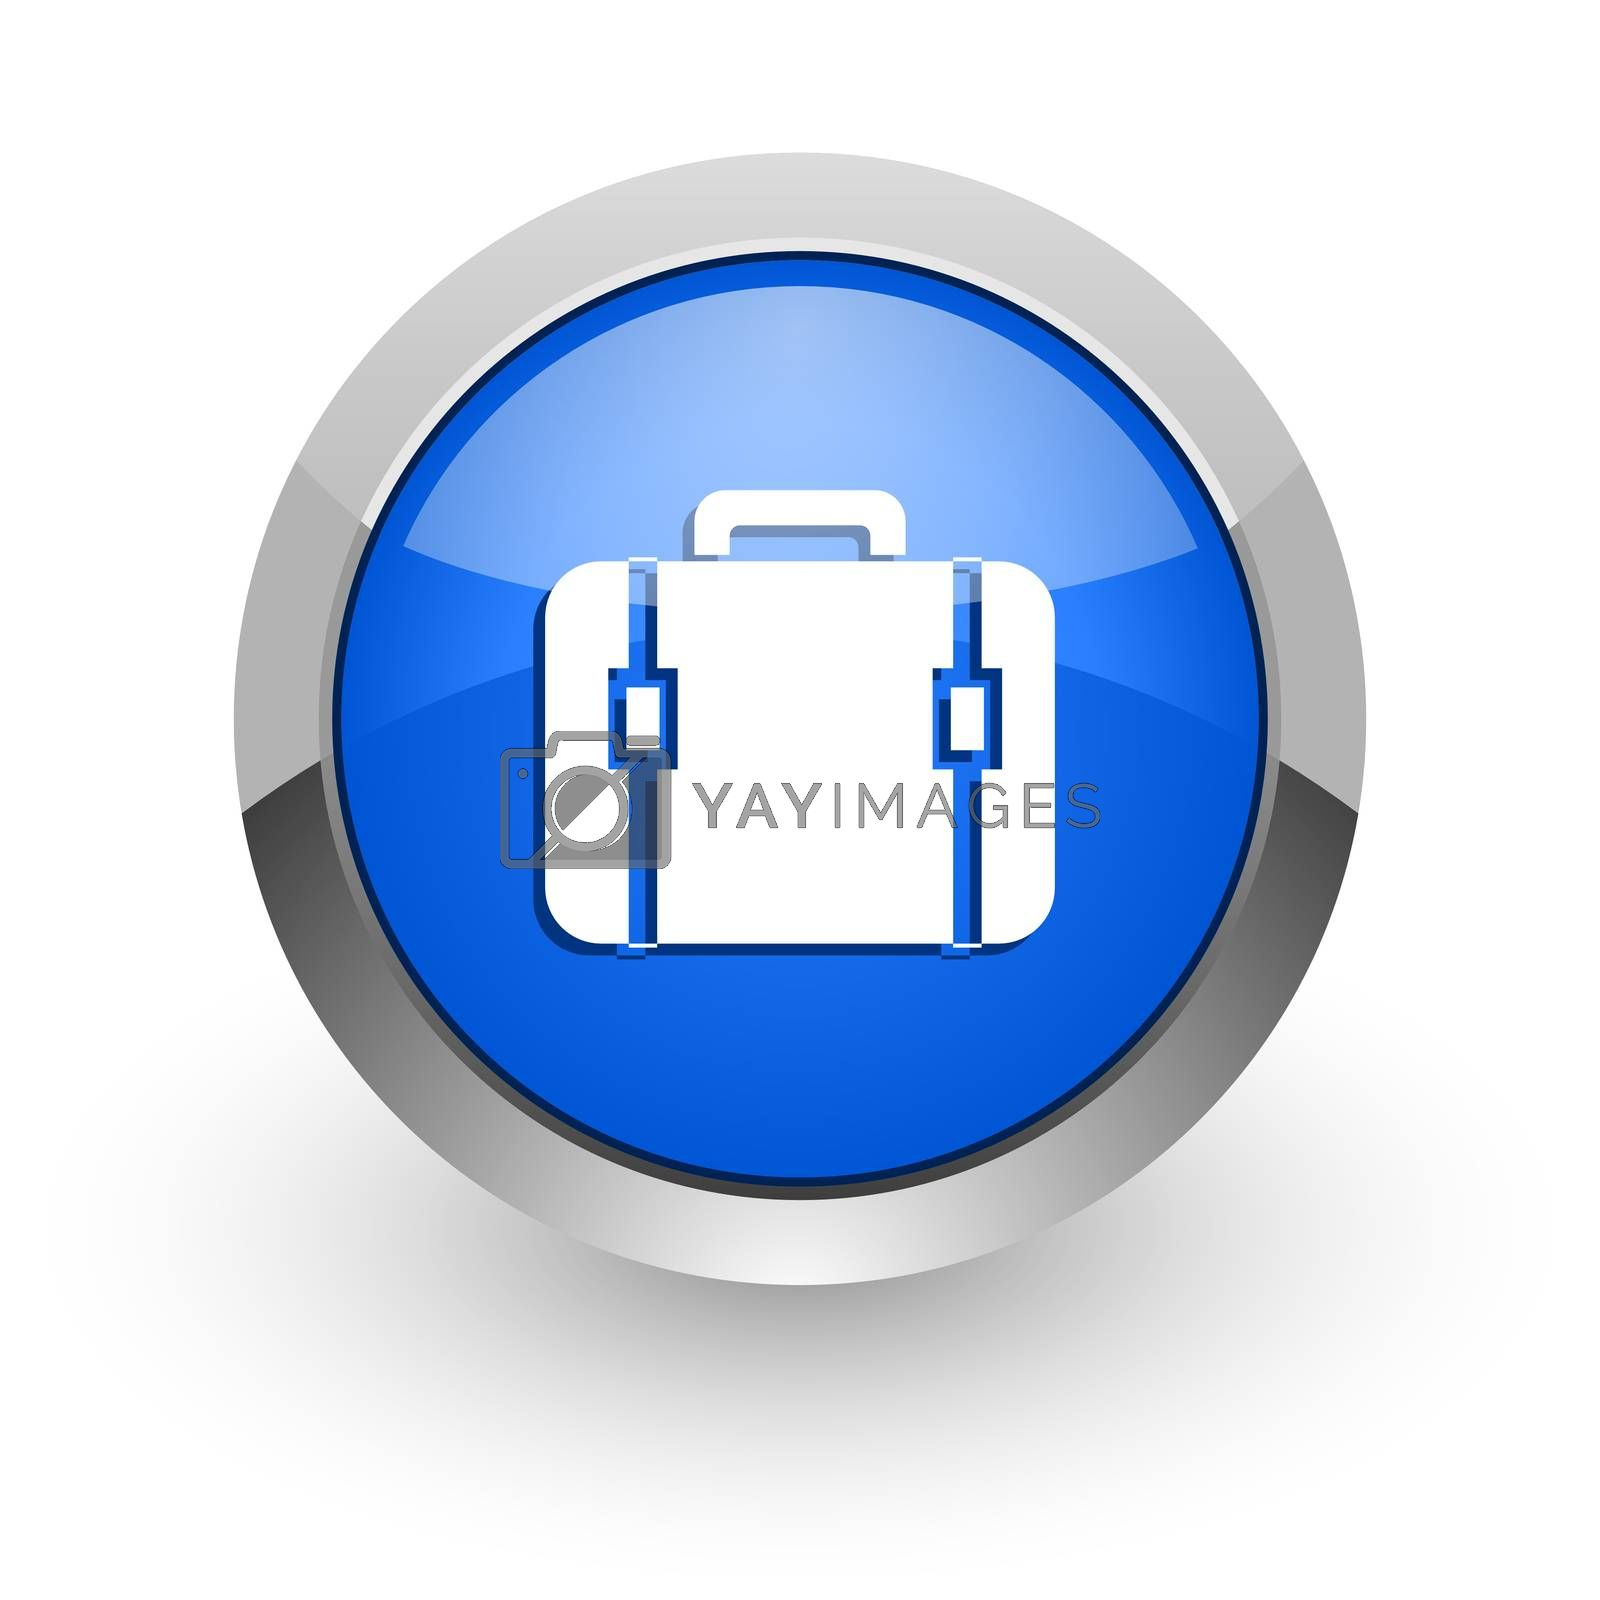 Royalty free image of bag blue glossy web icon by alexwhite